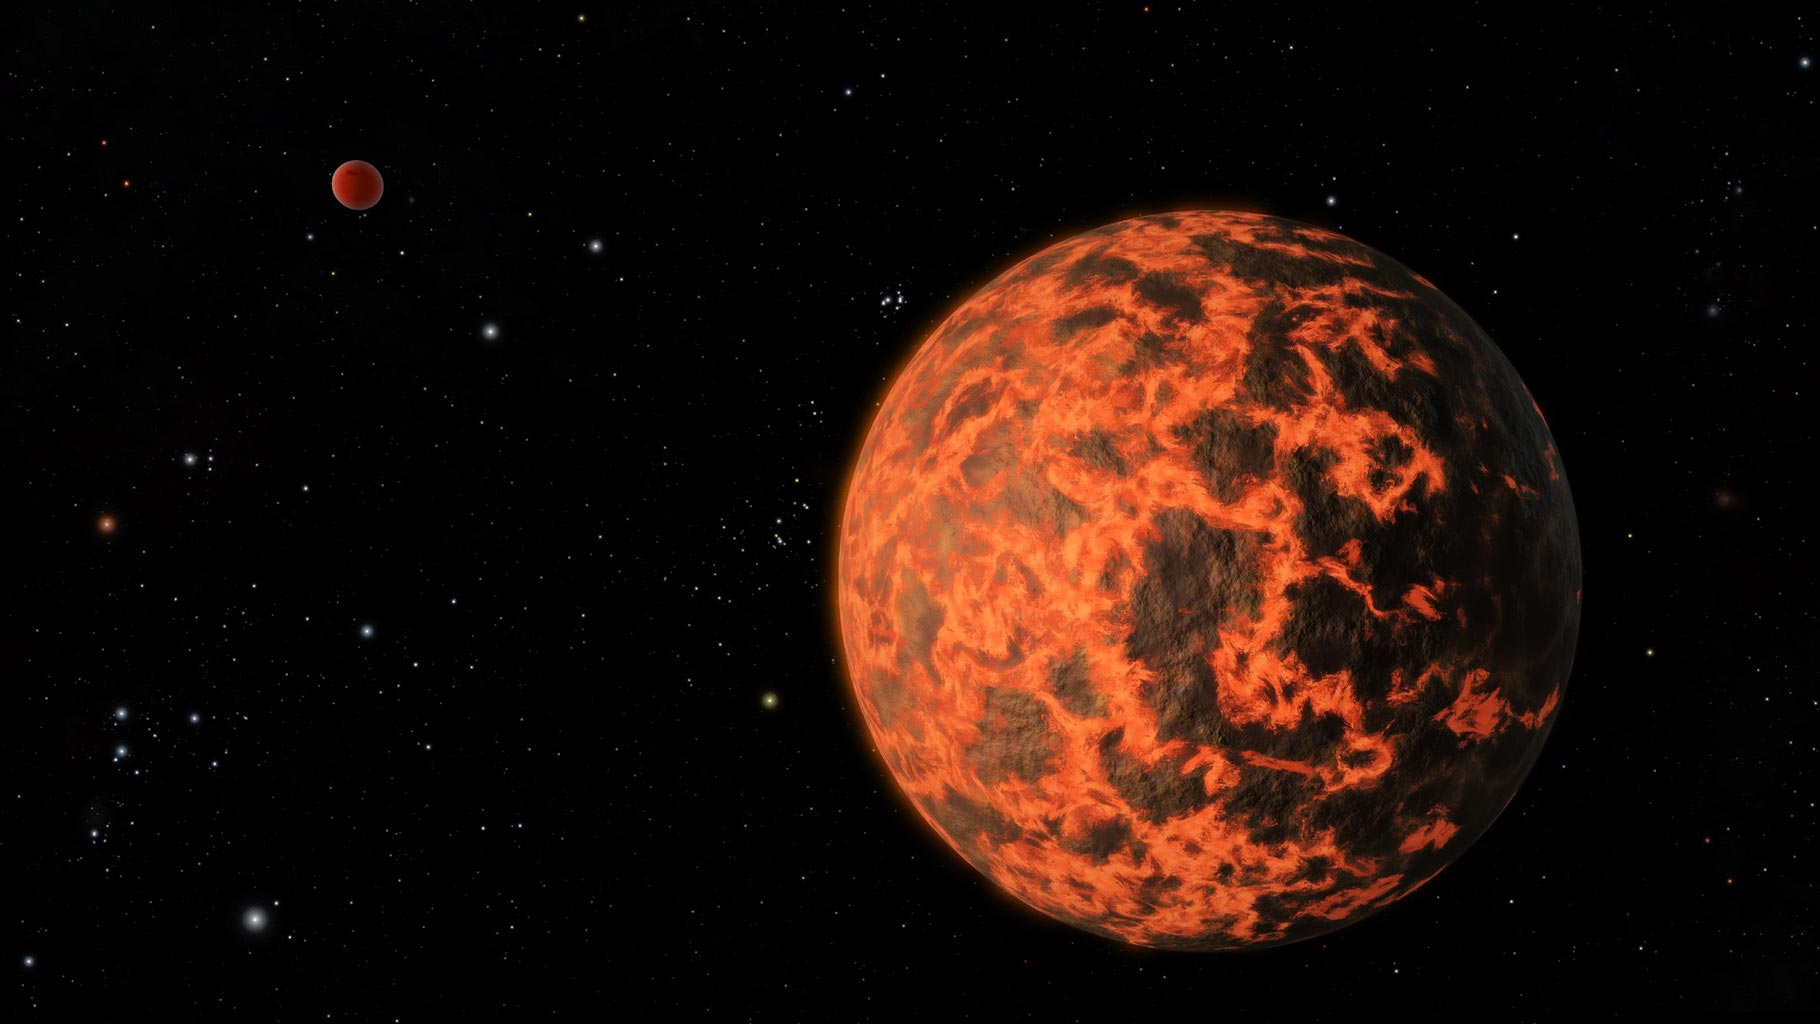 Astronomers find first exposed planetary core 730 light-years from Earth